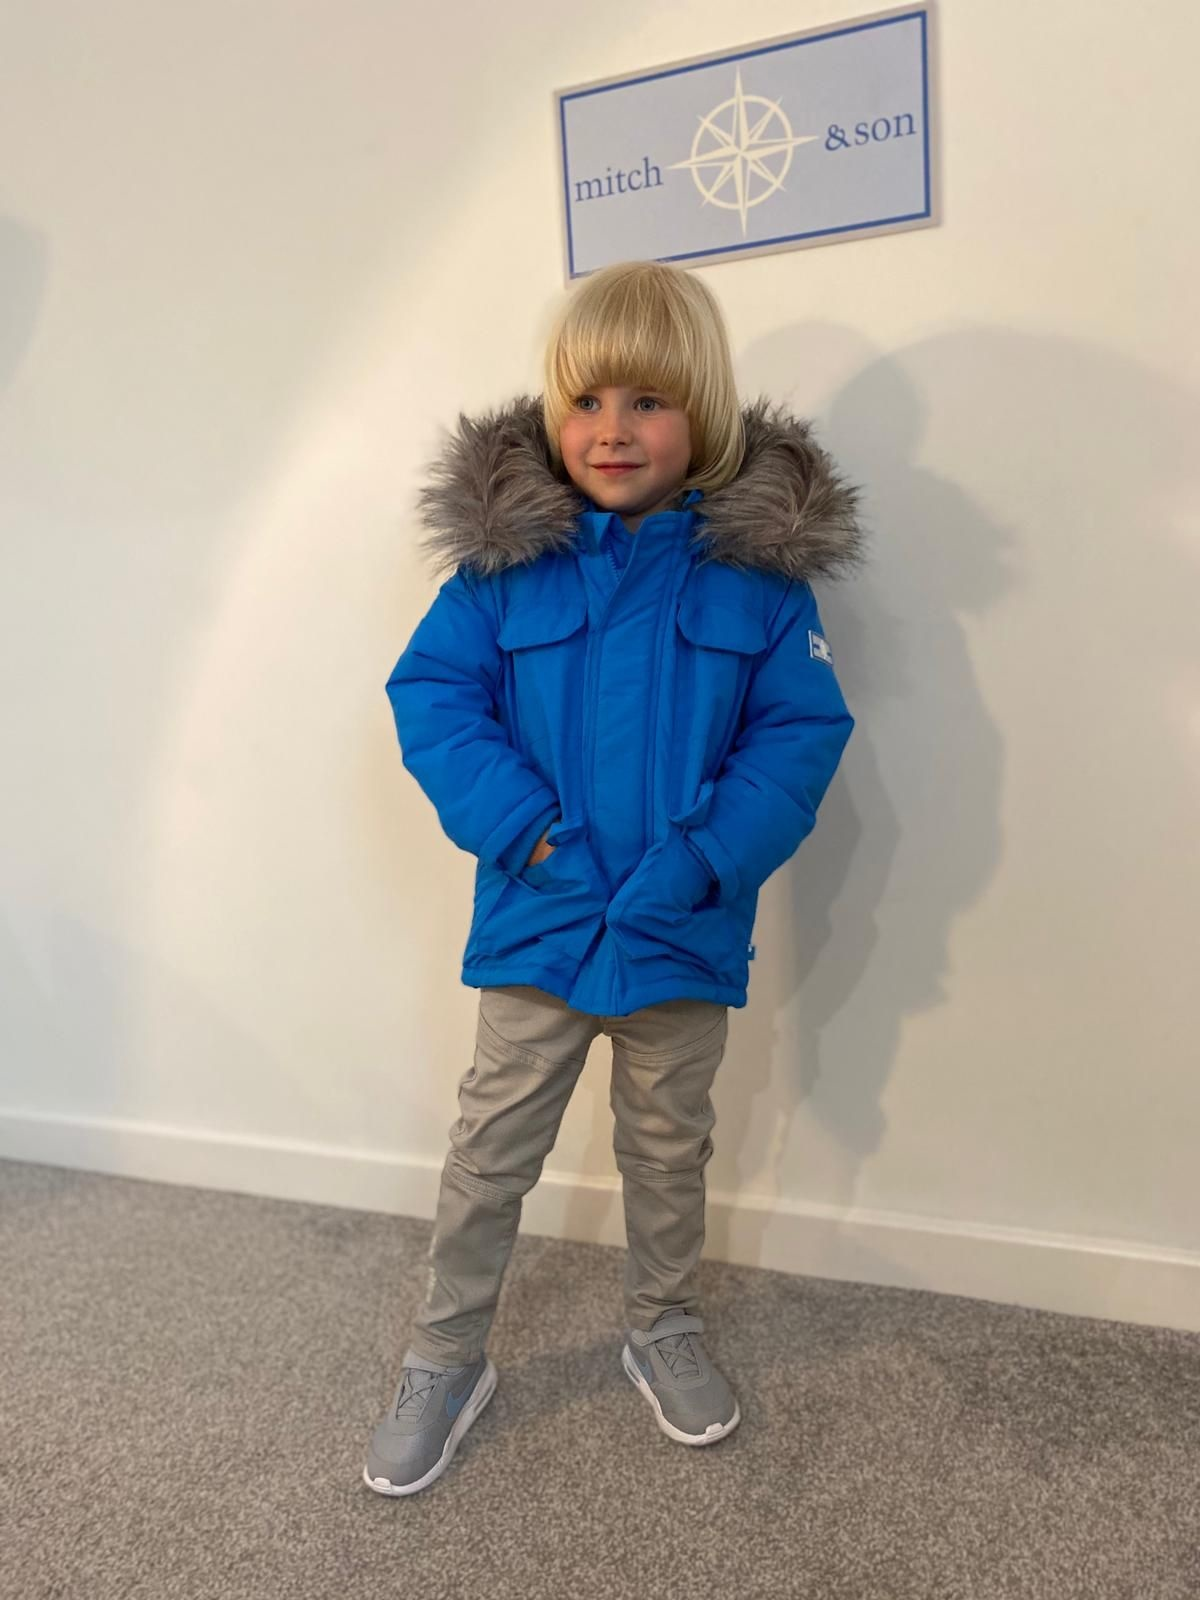 Mitch and Son Mitch & Son Tristan Brilliant Blue Exploration Jacket